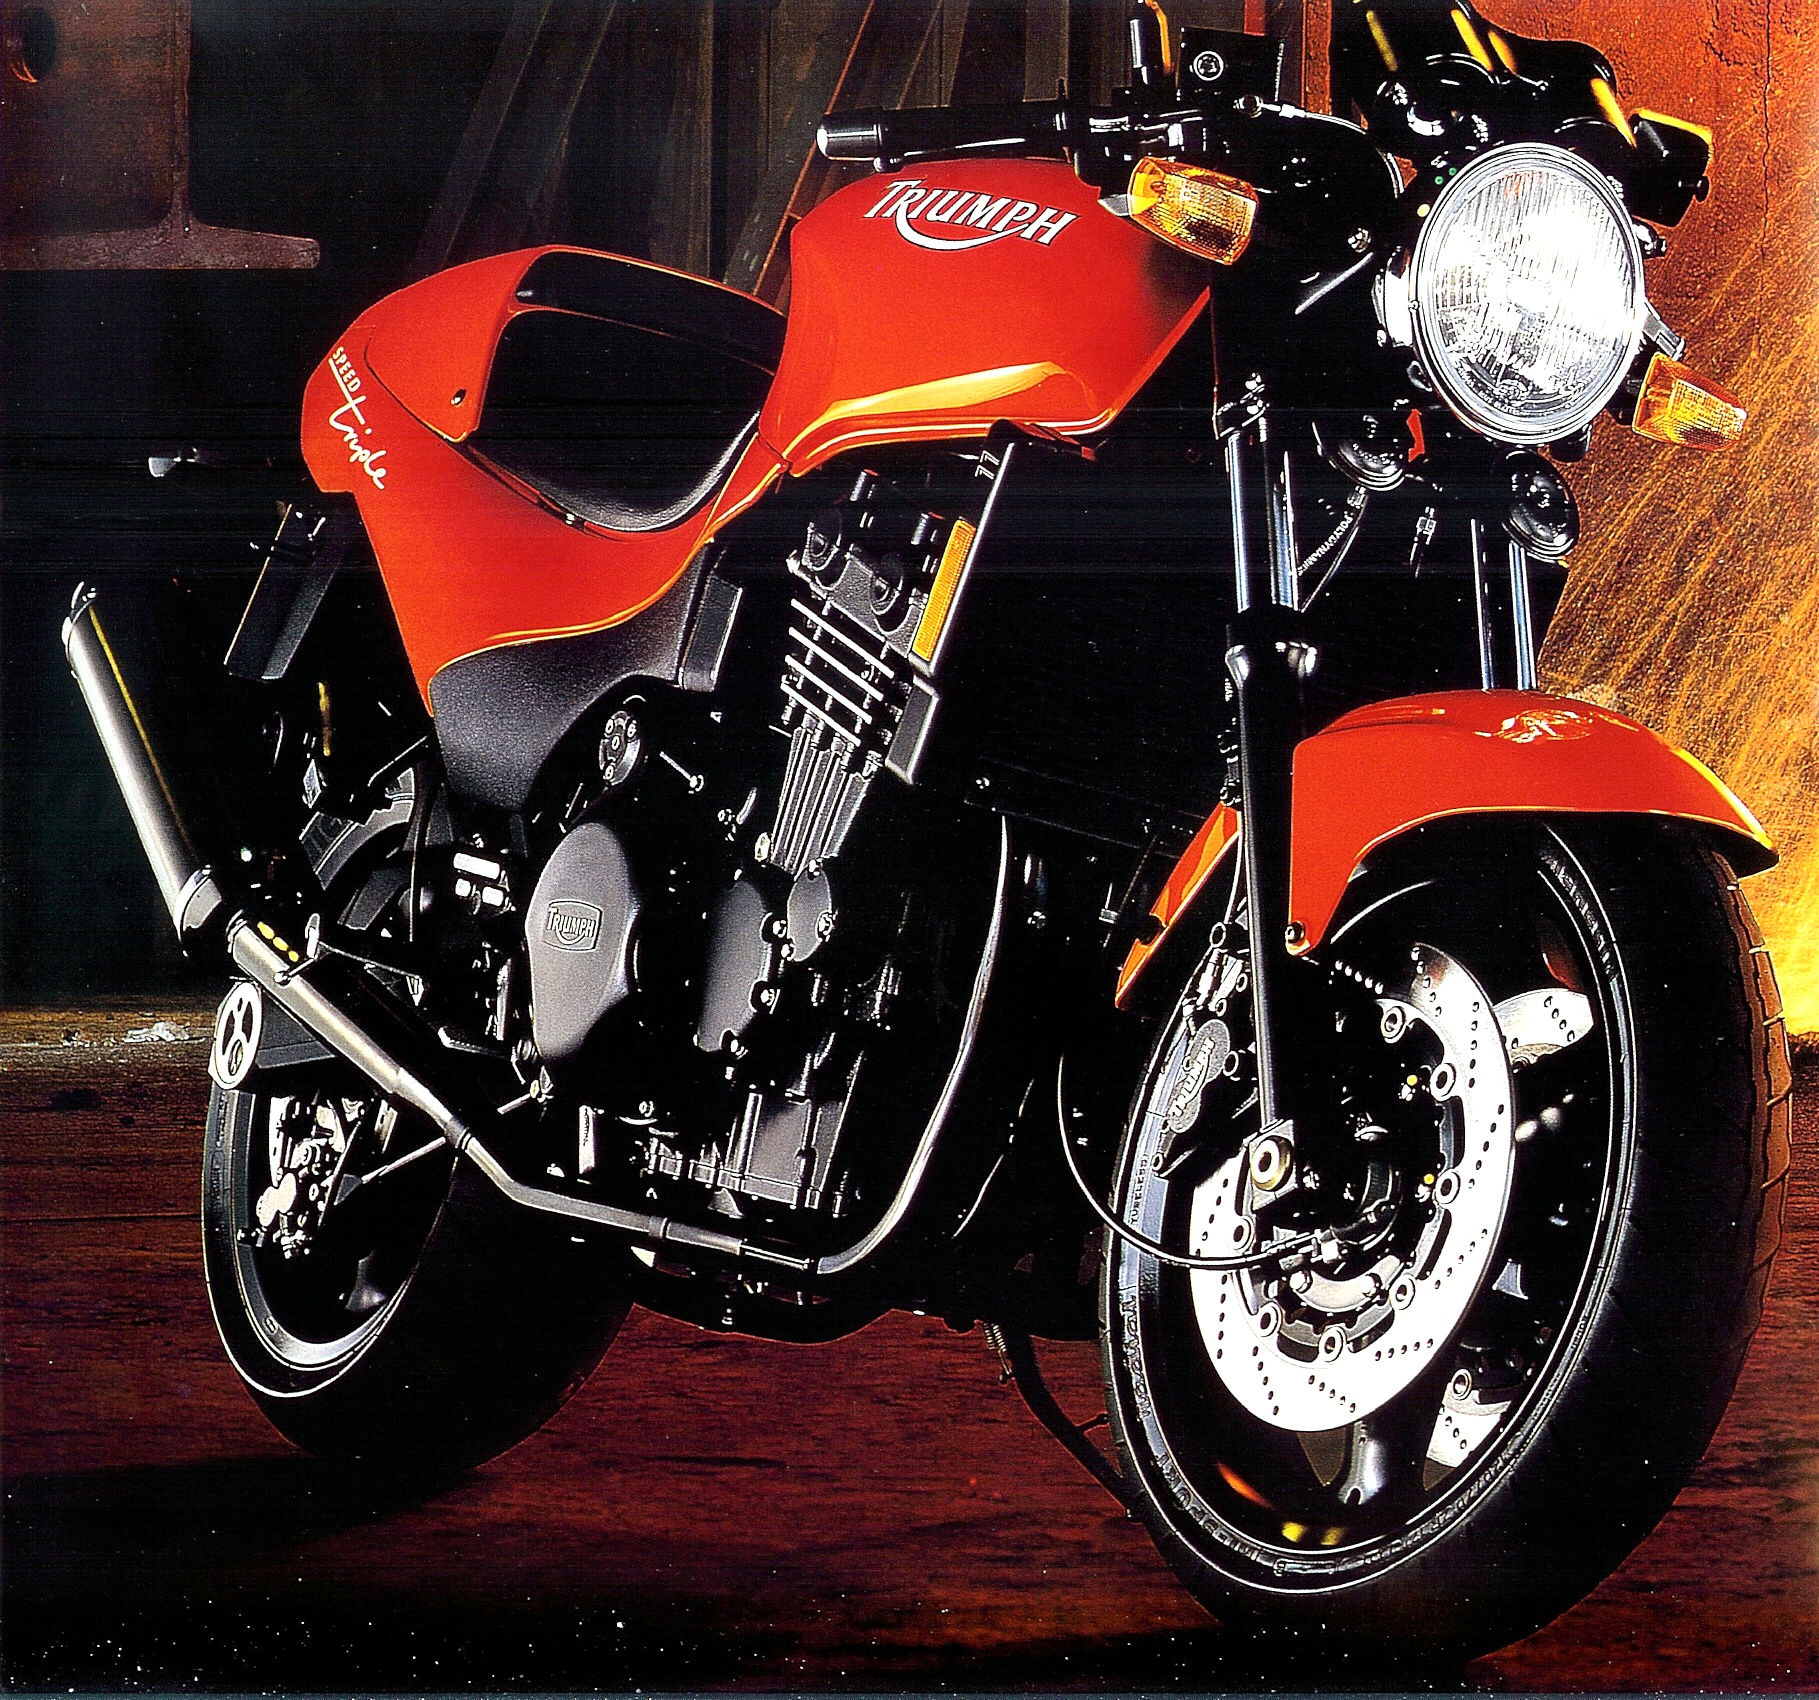 Triumph Speed Triple 900 1995 images #163717